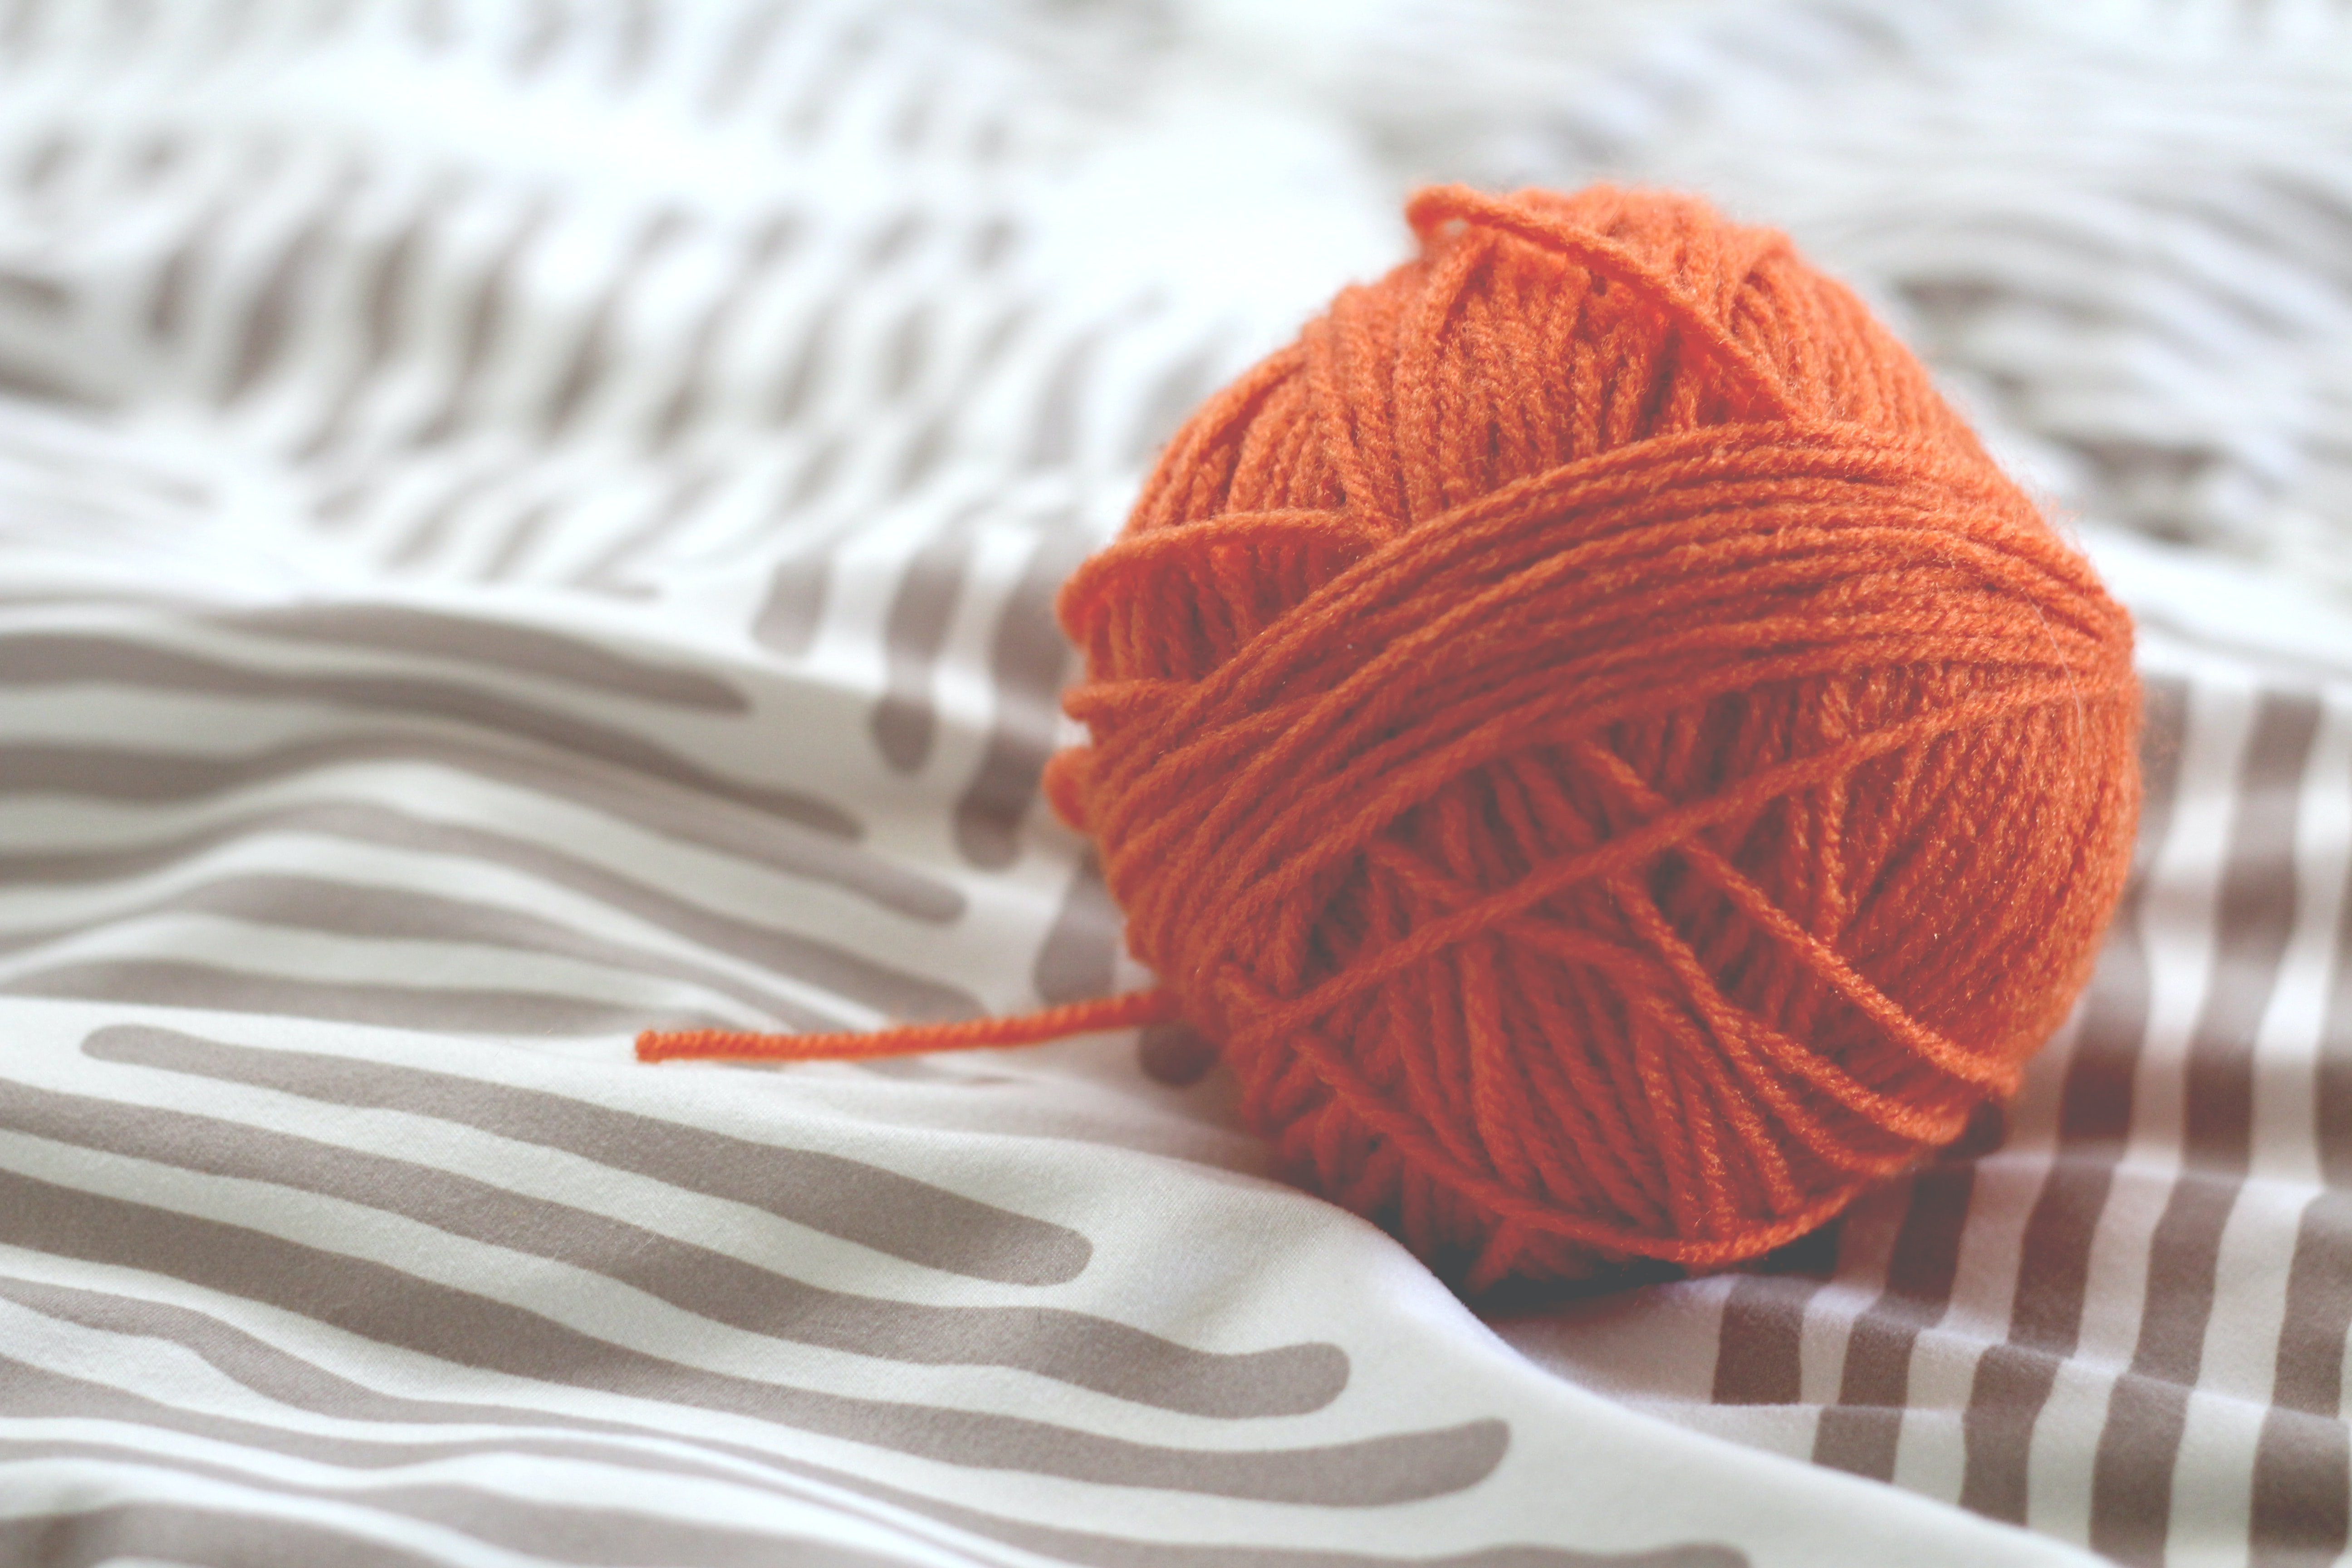 A red ball of yarn on a blanket